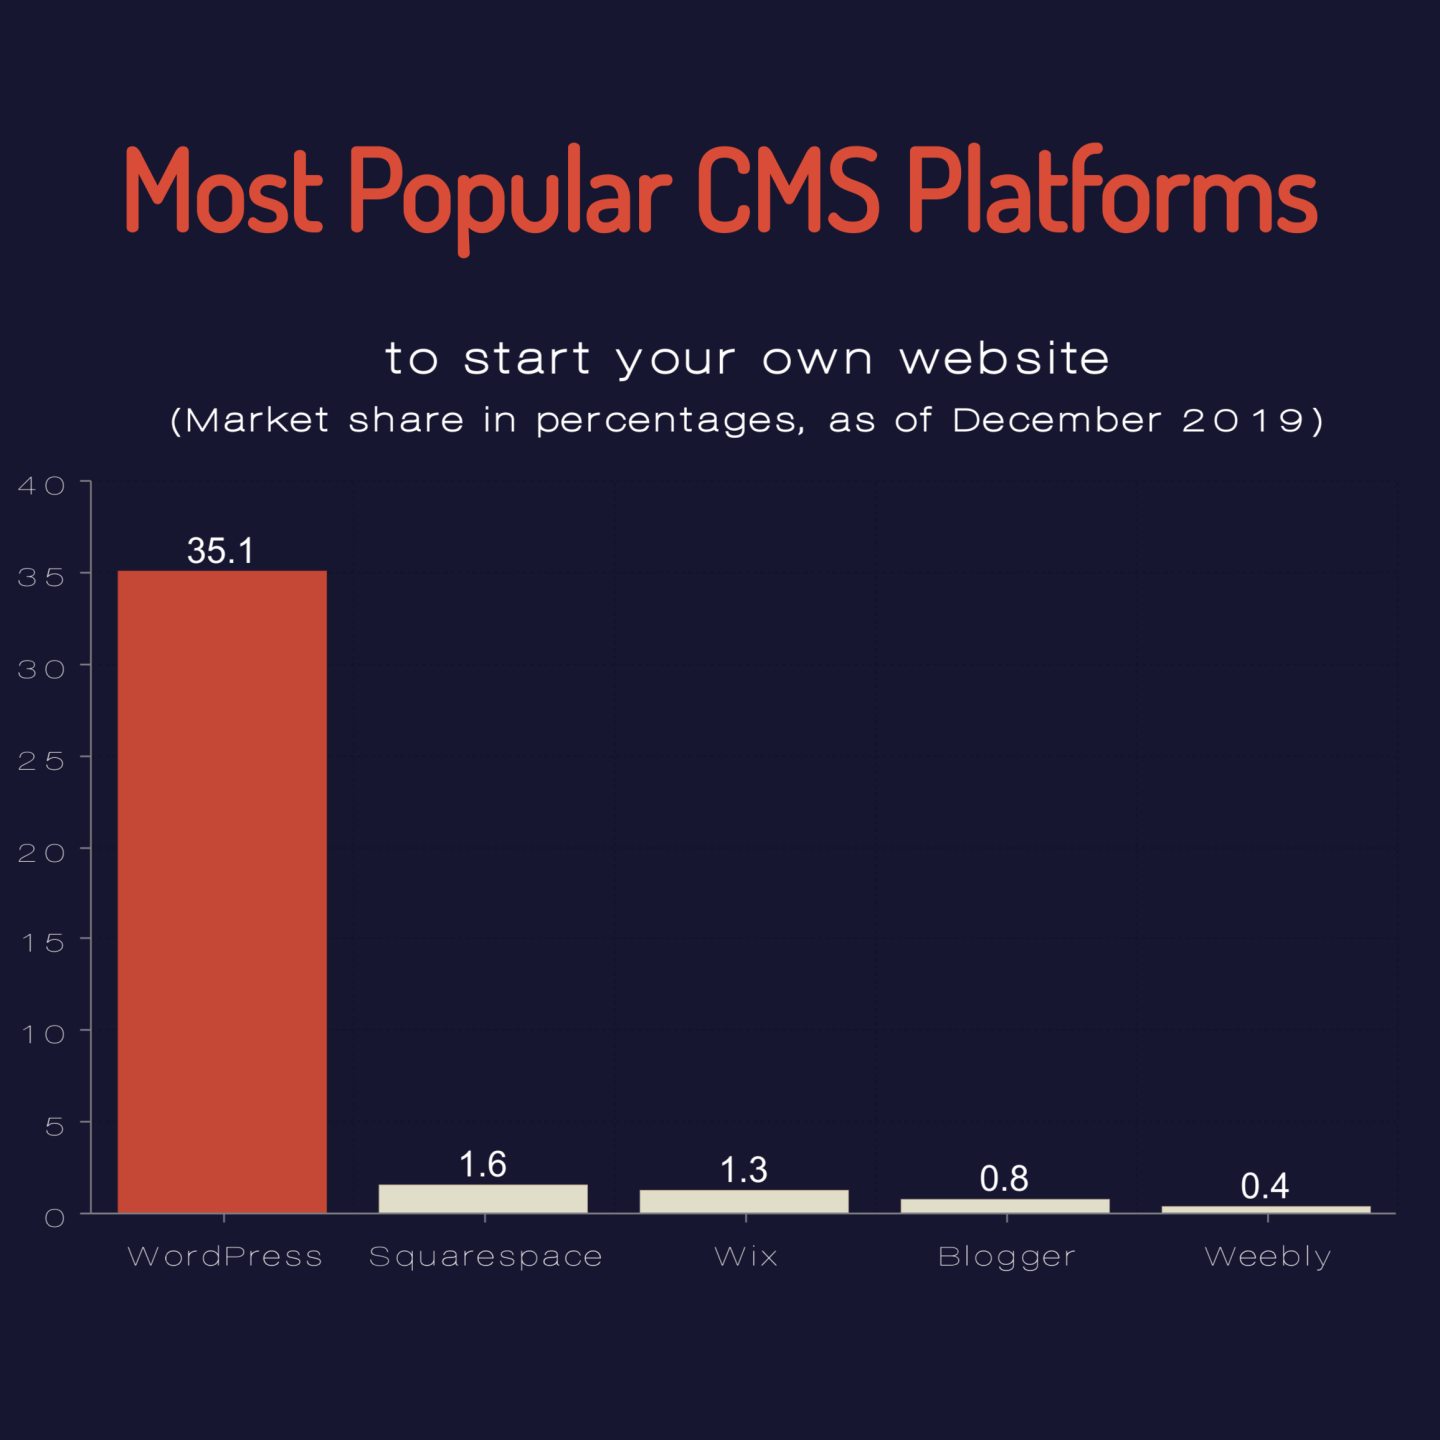 Top CMS platforms to start a site